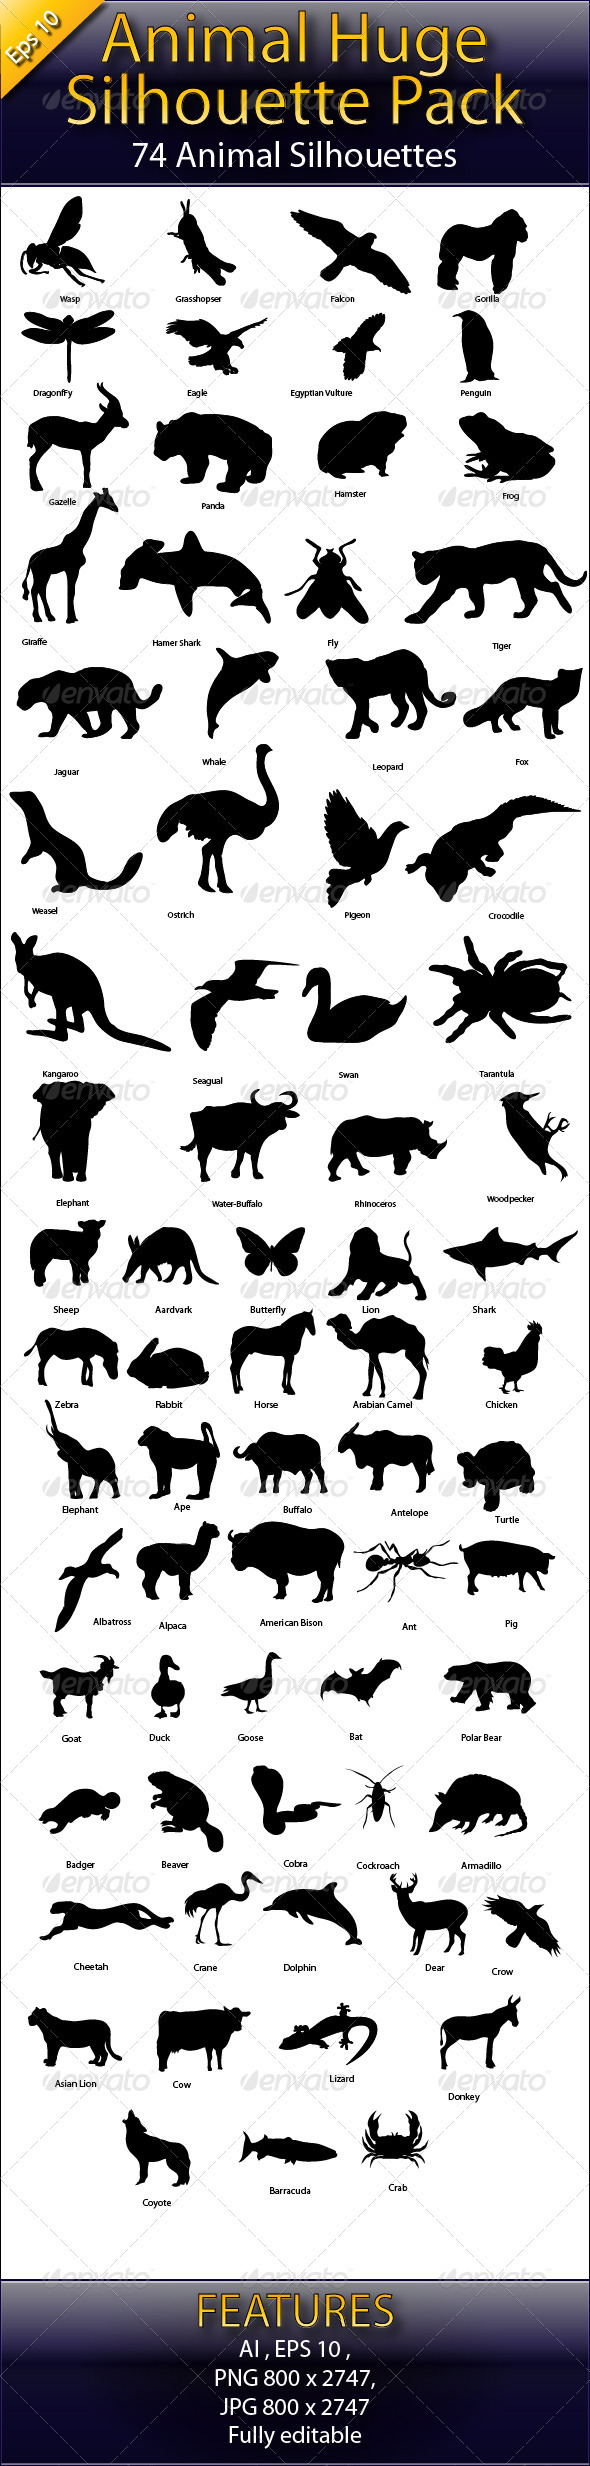 Animal Huge Collection Silhouette Pack - Animals Characters